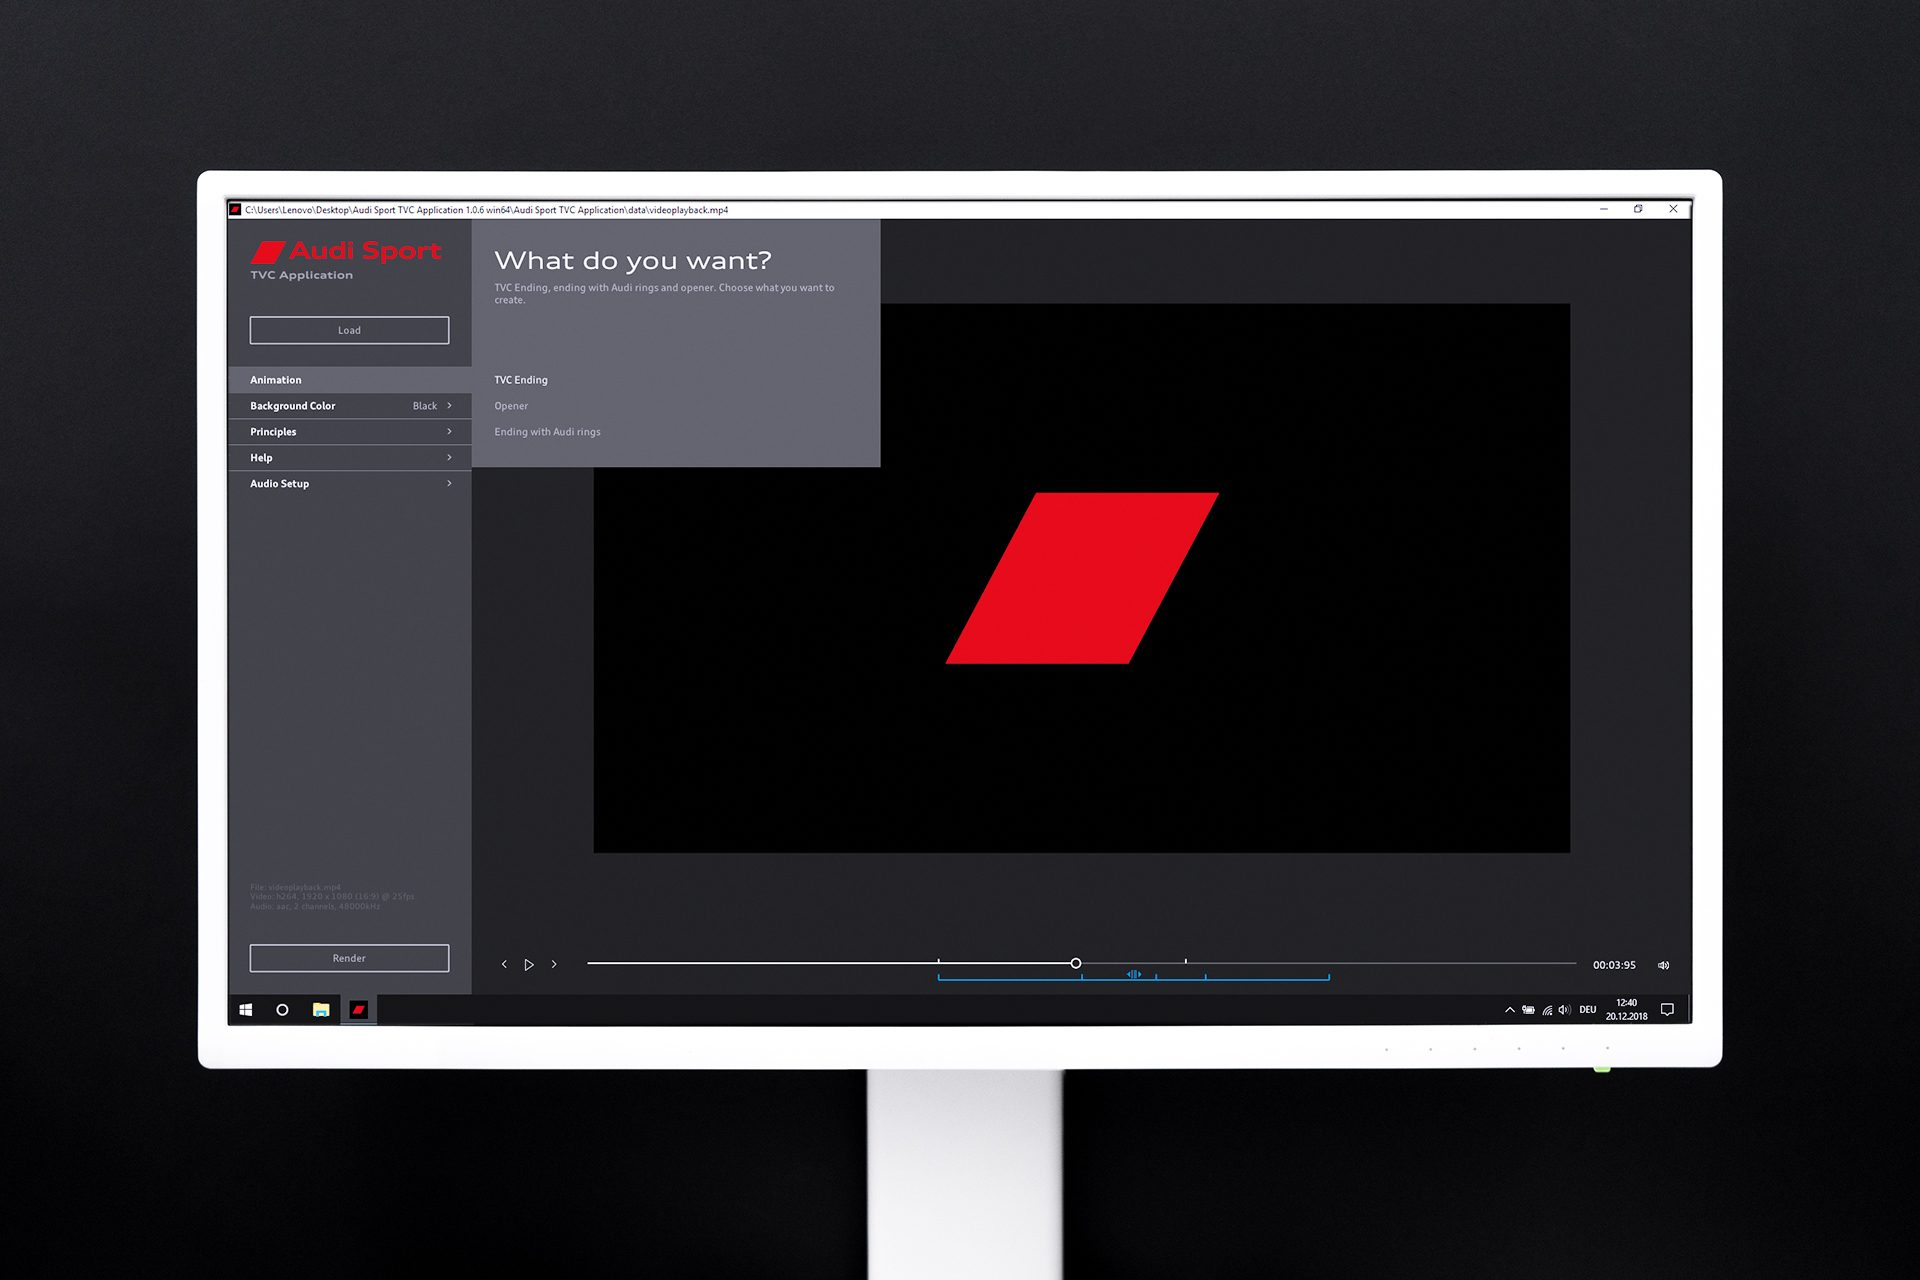 Audi Sport TVC application for Windows